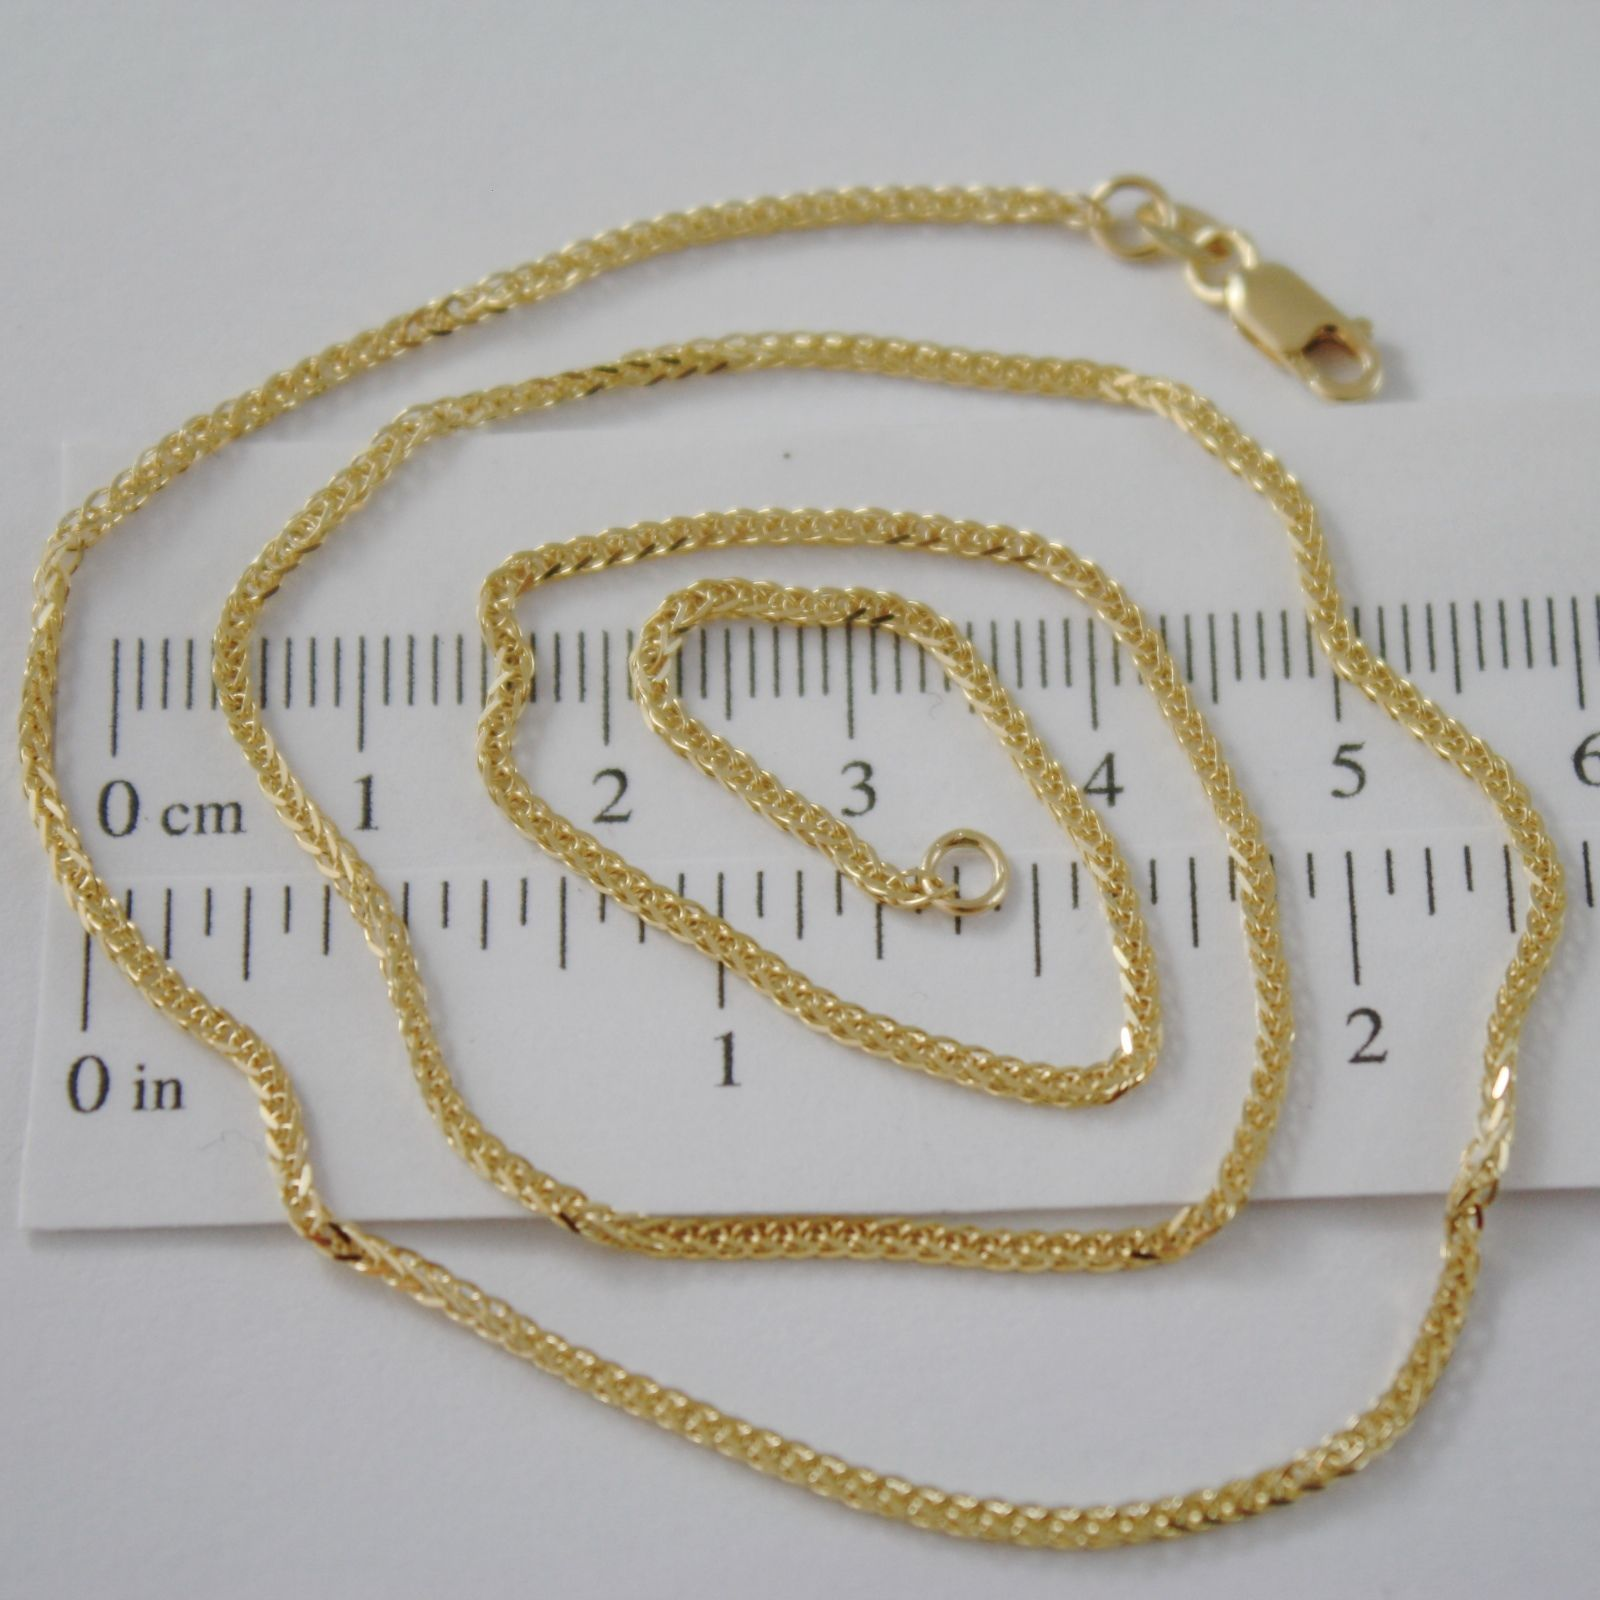 SOLID 18K YELLOW GOLD CHAIN NECKLACE 2MM EAR SQUARE MESH 15.75 IN, MADE IN ITALY